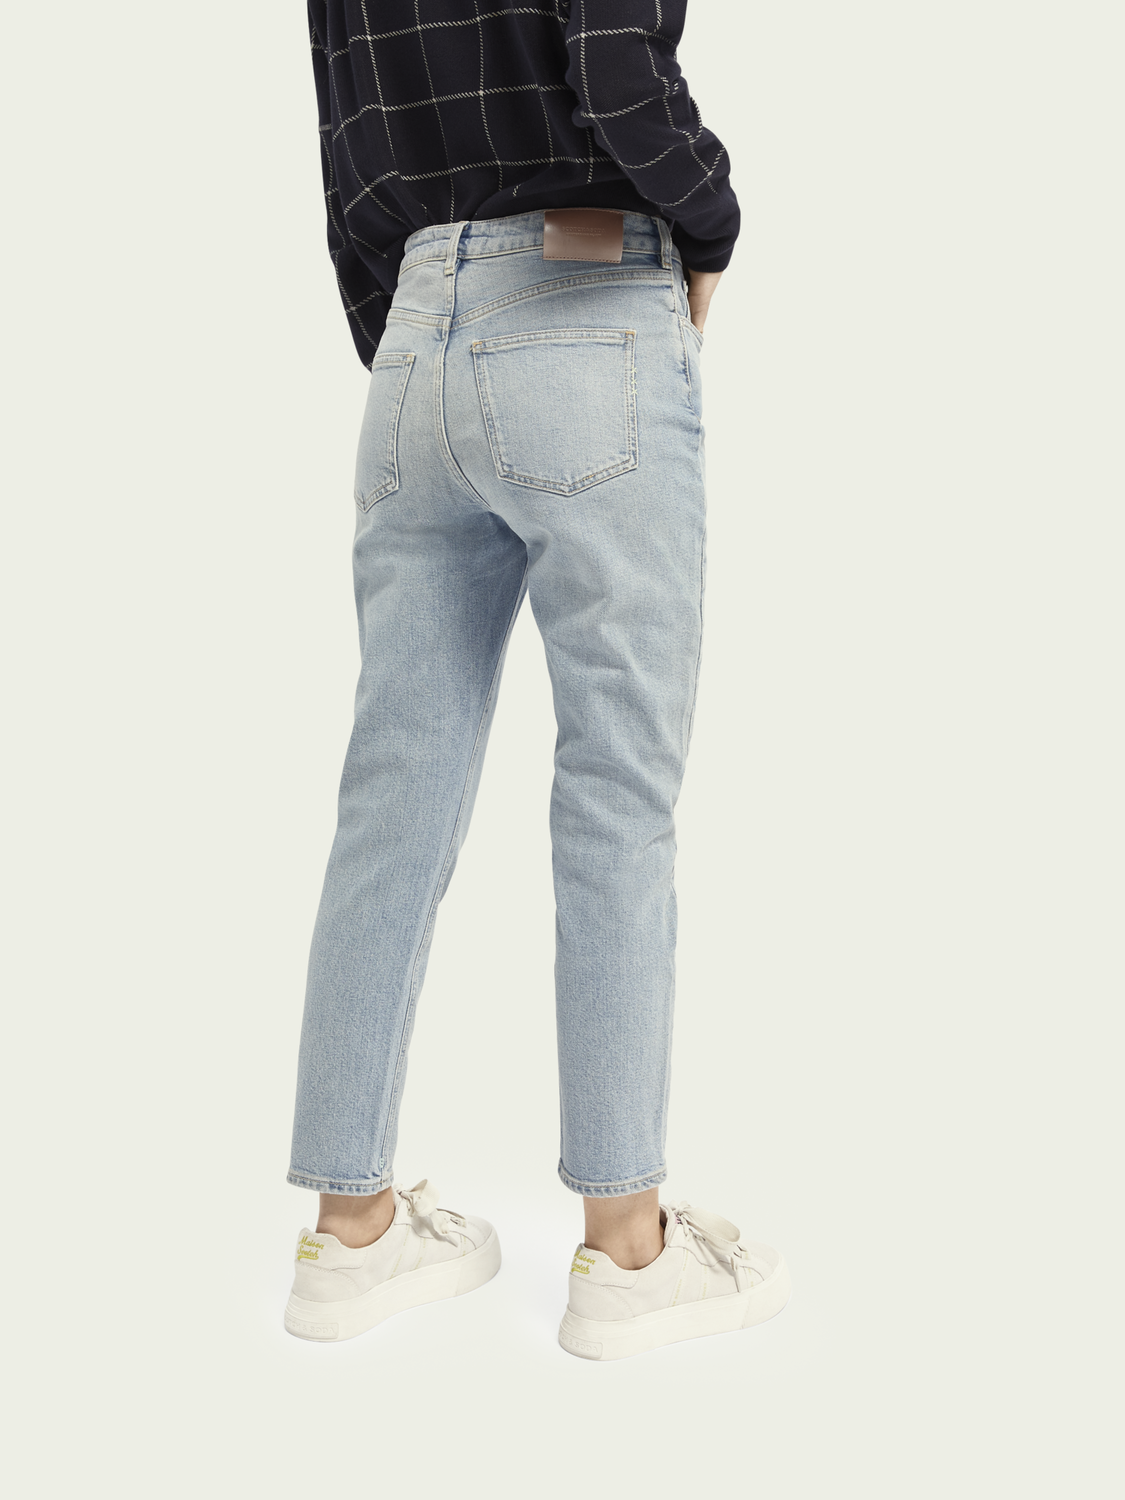 Dames High Five high-rise jeans met smalle pijpen – Cool Water